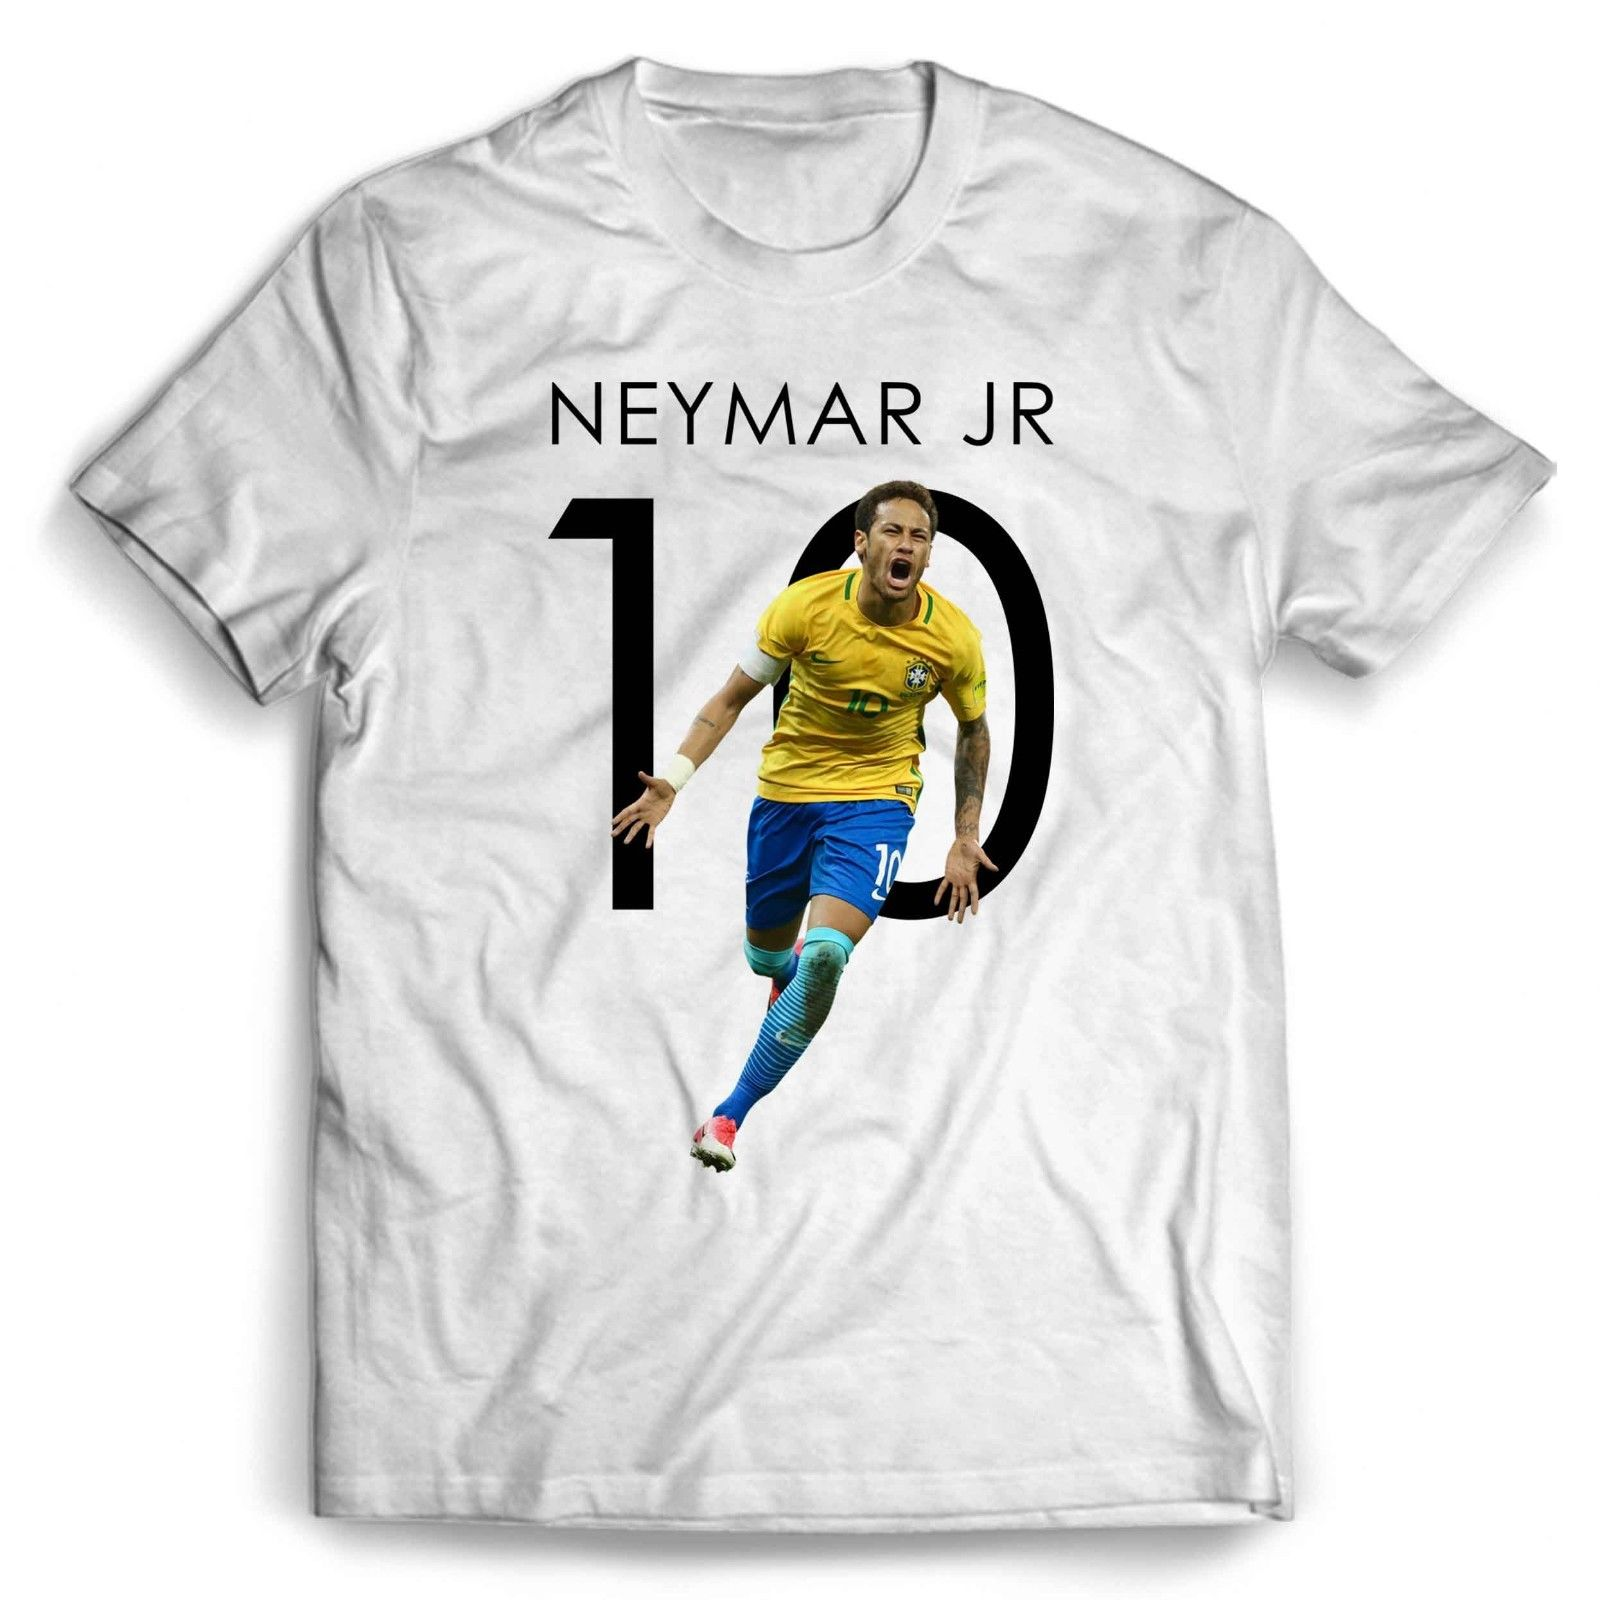 Tops & Tees T-shirts Top Quality 2018 New Brand Neymar Footballer Soccerite Brasil T-shirt Celebrity Star One In The City